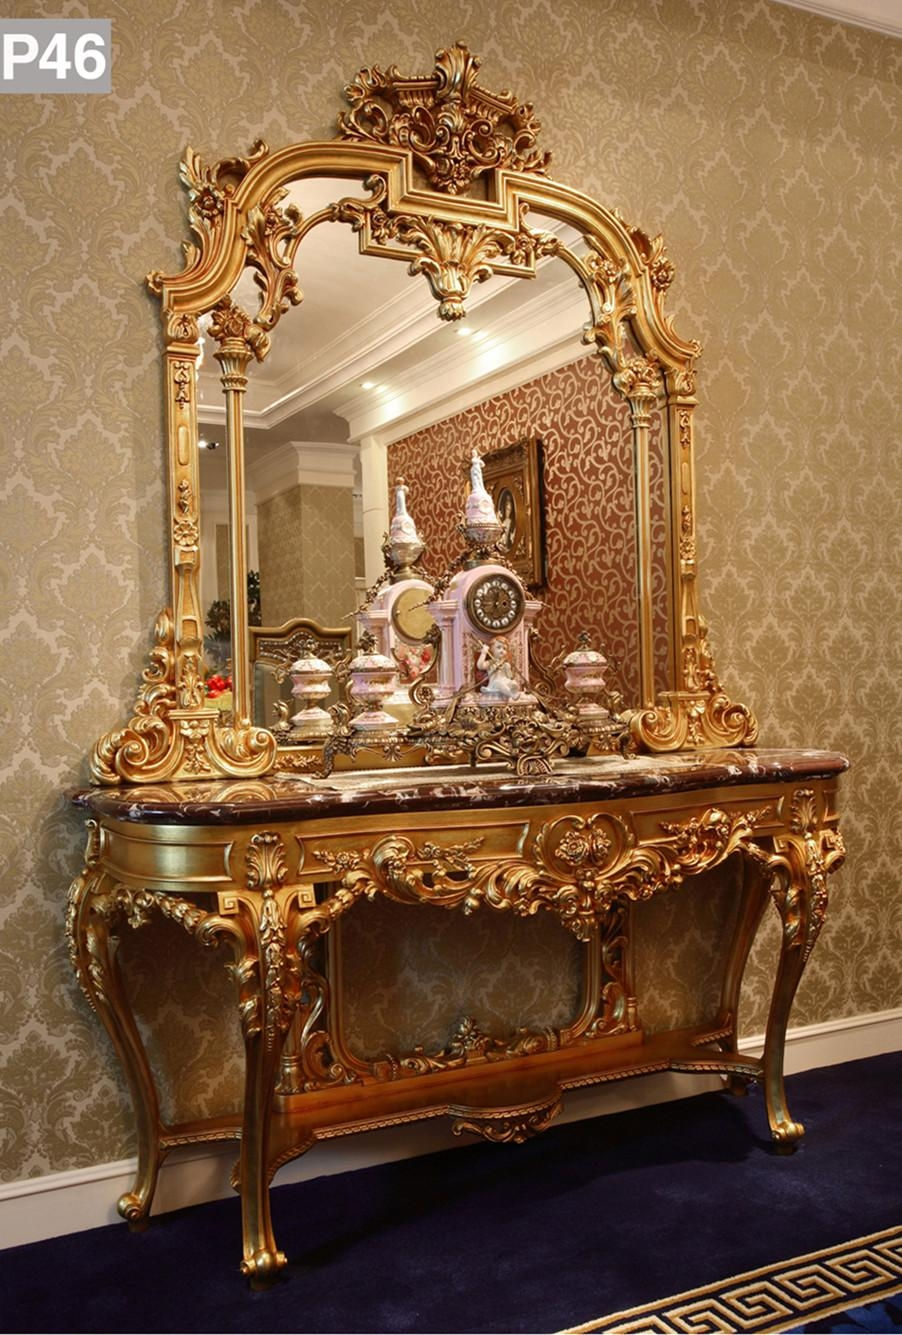 Luxury French Rococo Bedroom Furniture Dresser Table & Mirror Regarding French Rococo Mirror (Image 15 of 20)